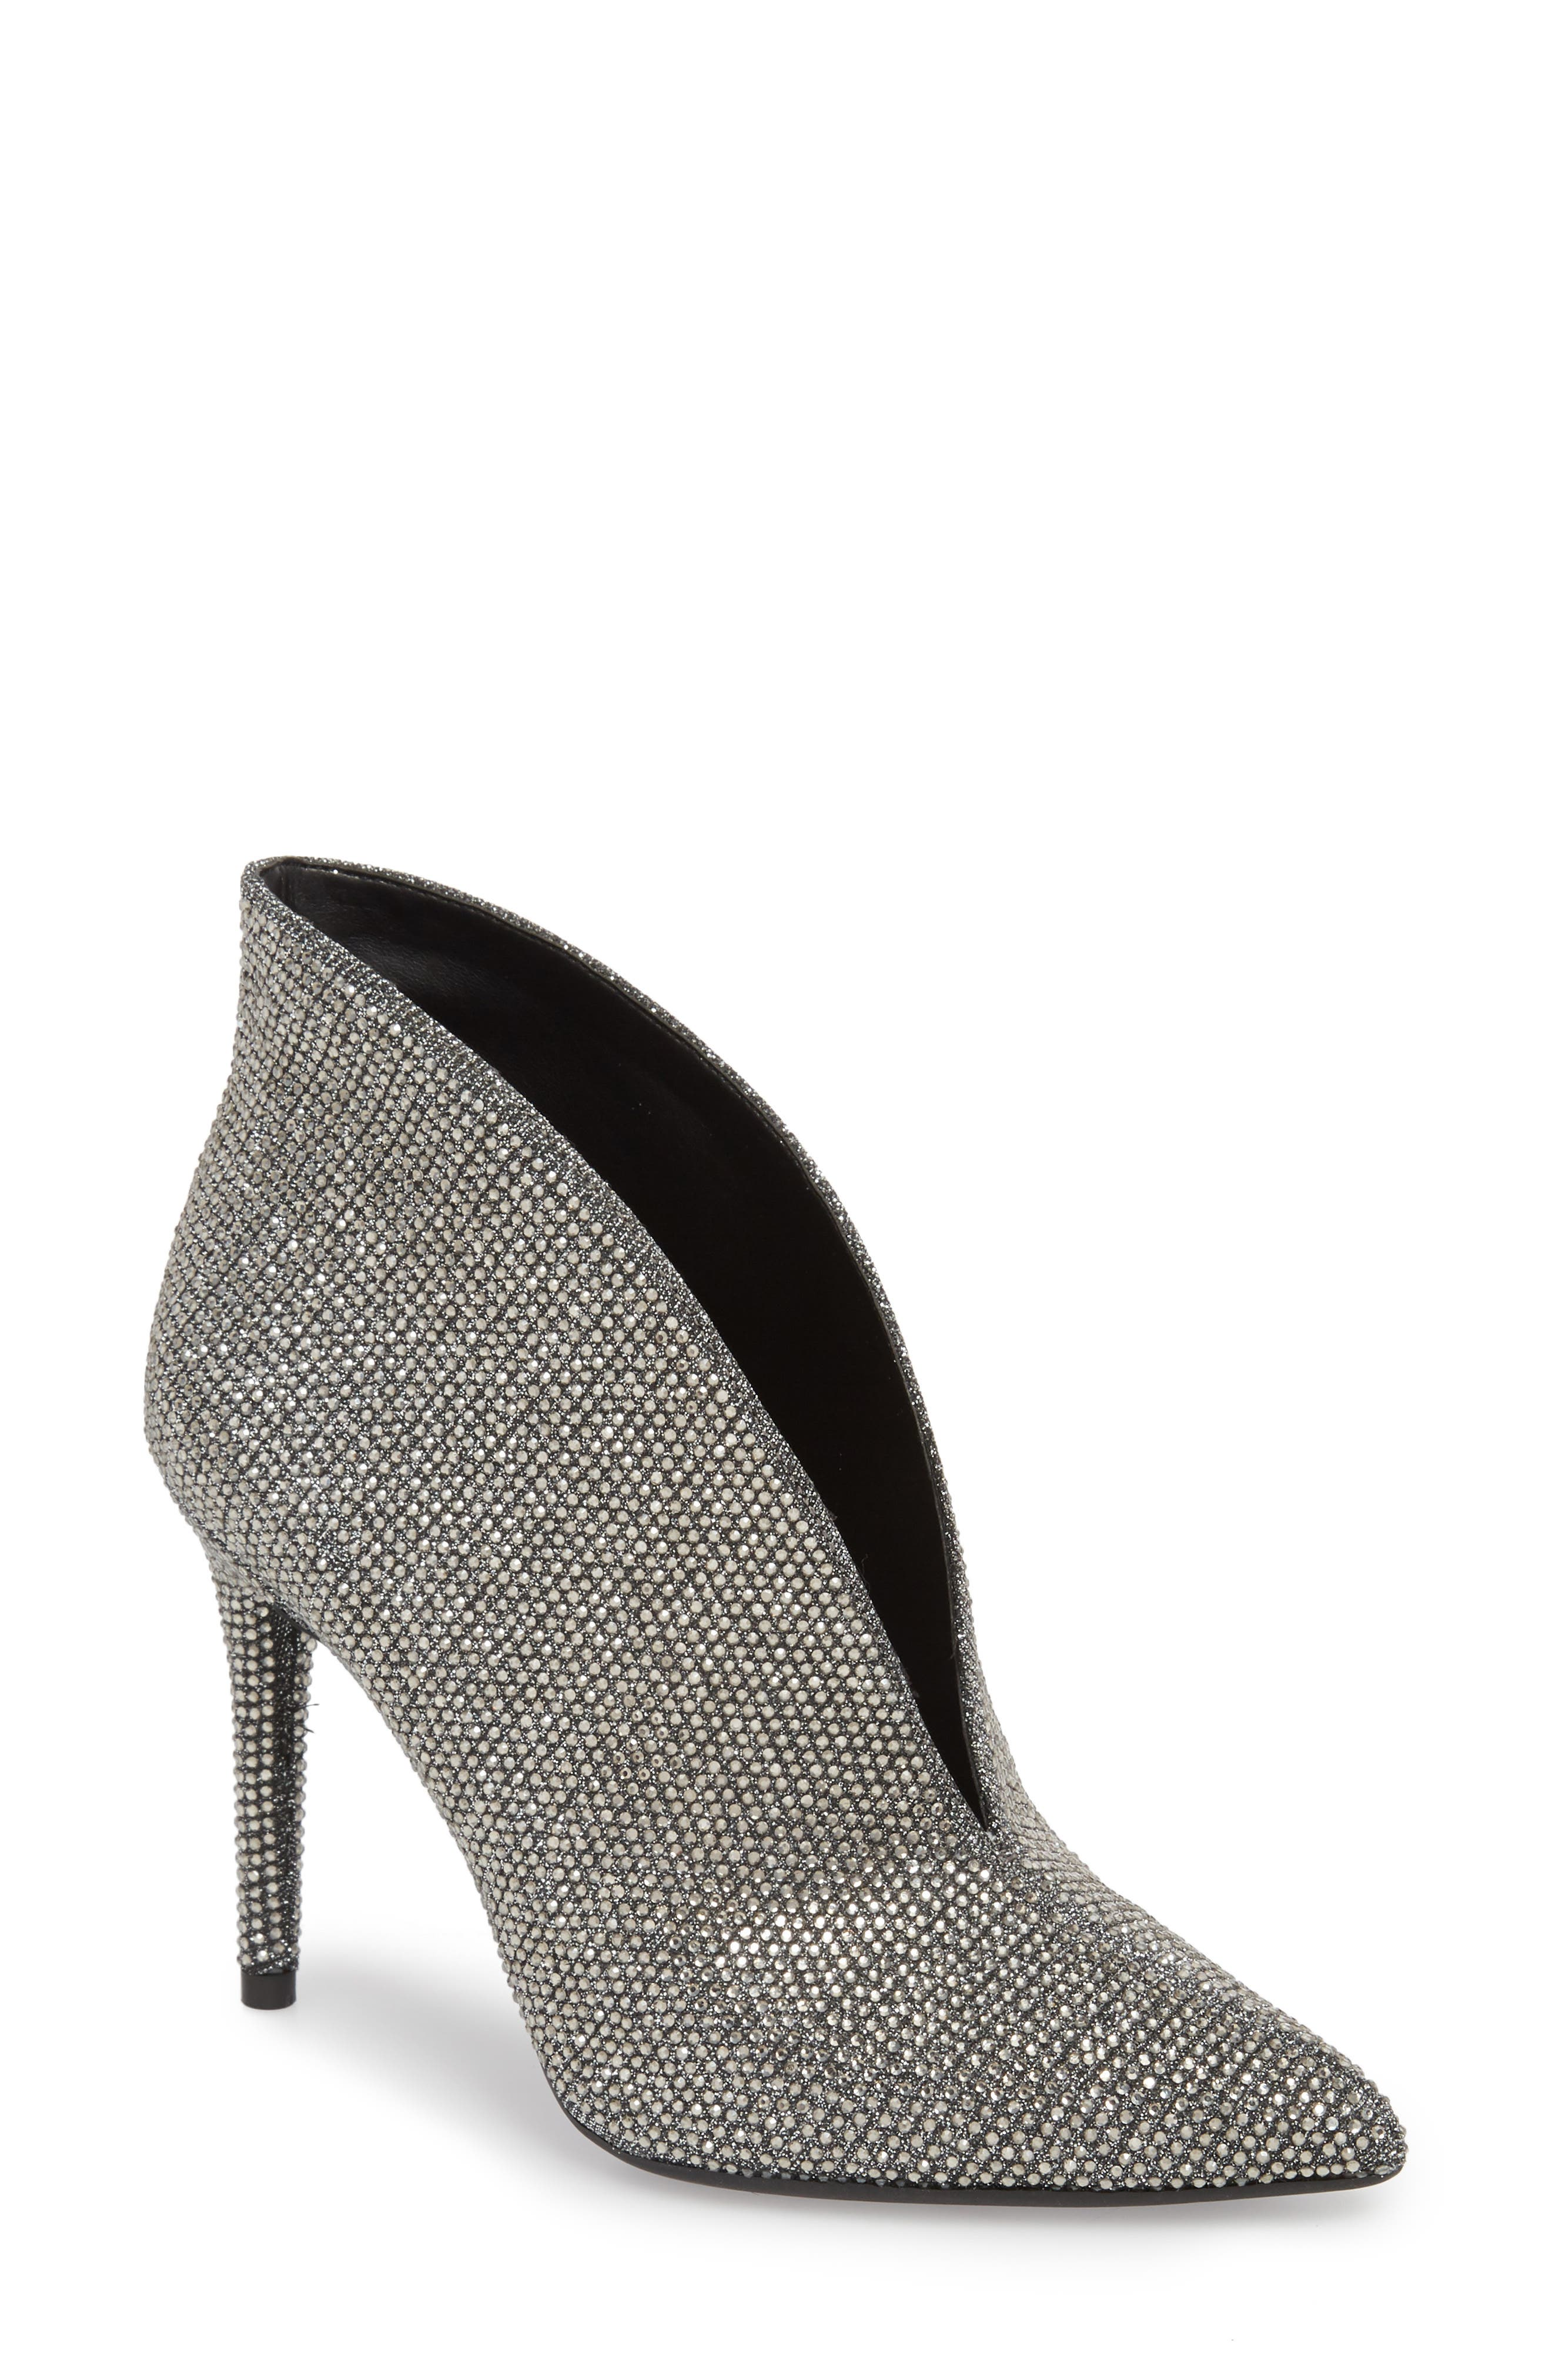 Lasnia Embellished Bootie,                             Main thumbnail 1, color,                             PEWTER MULTI